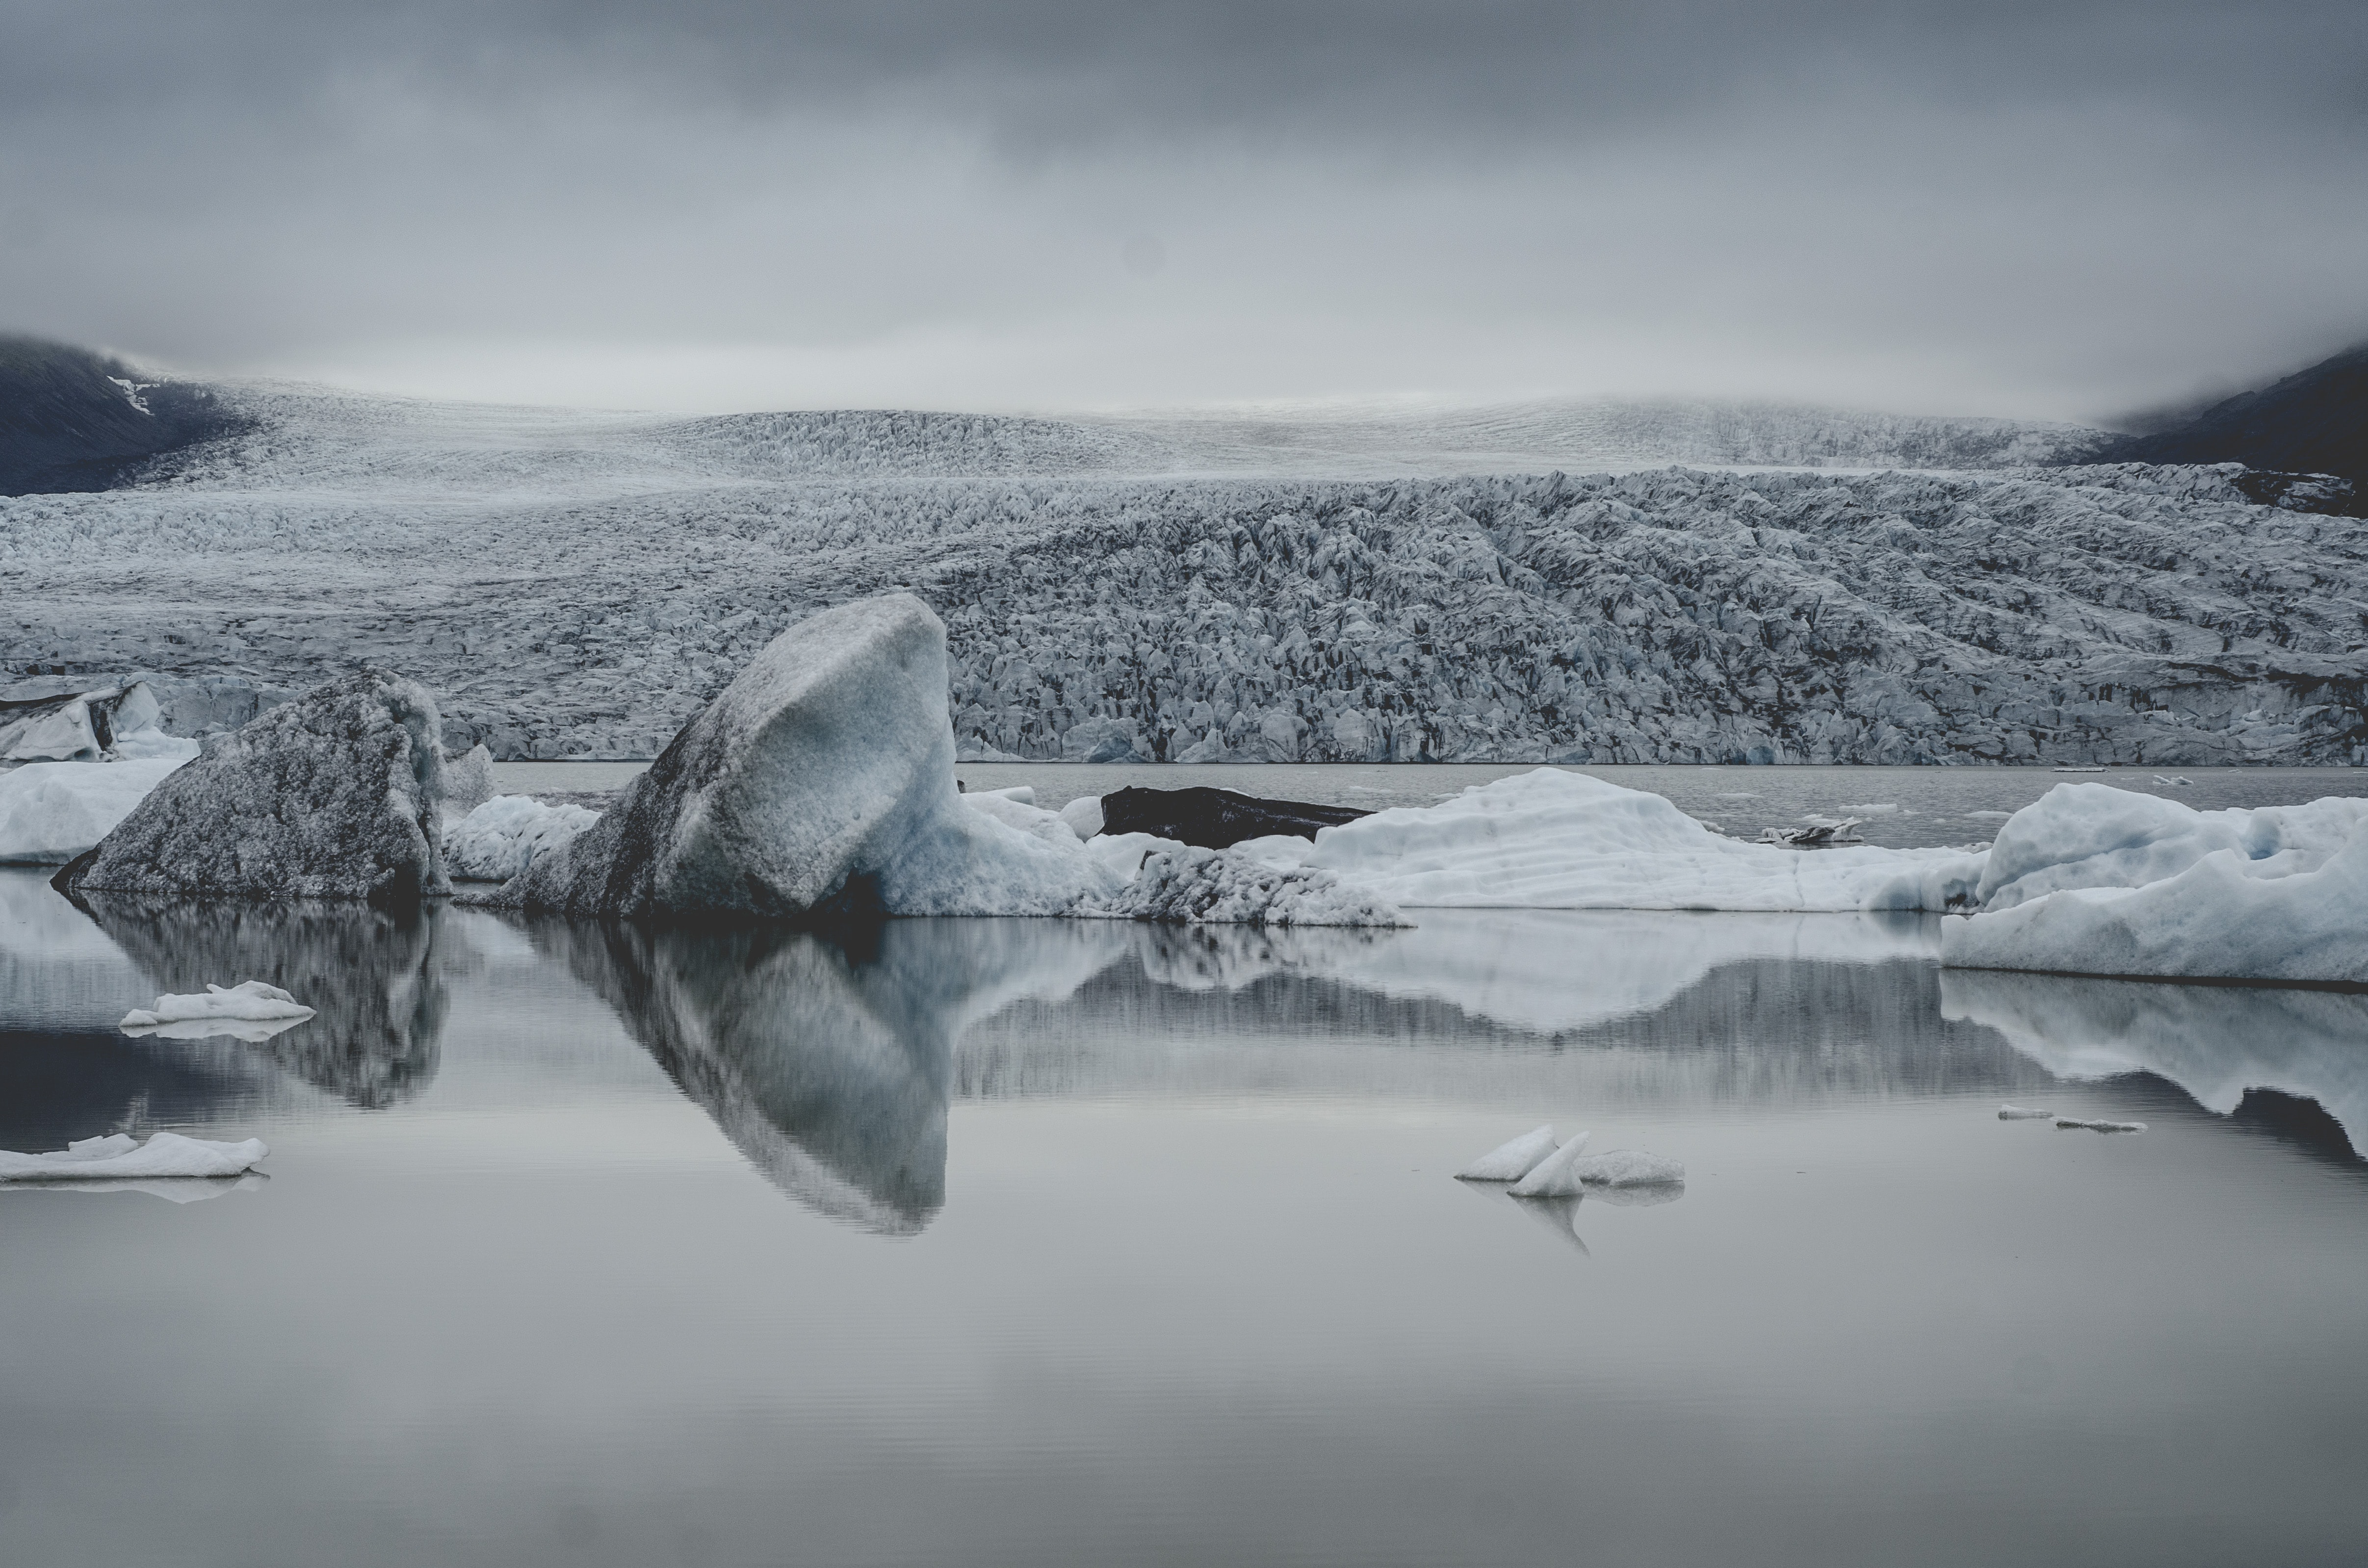 A still lake with glaciers jutting out with a snowy wilderness receding into the horizon